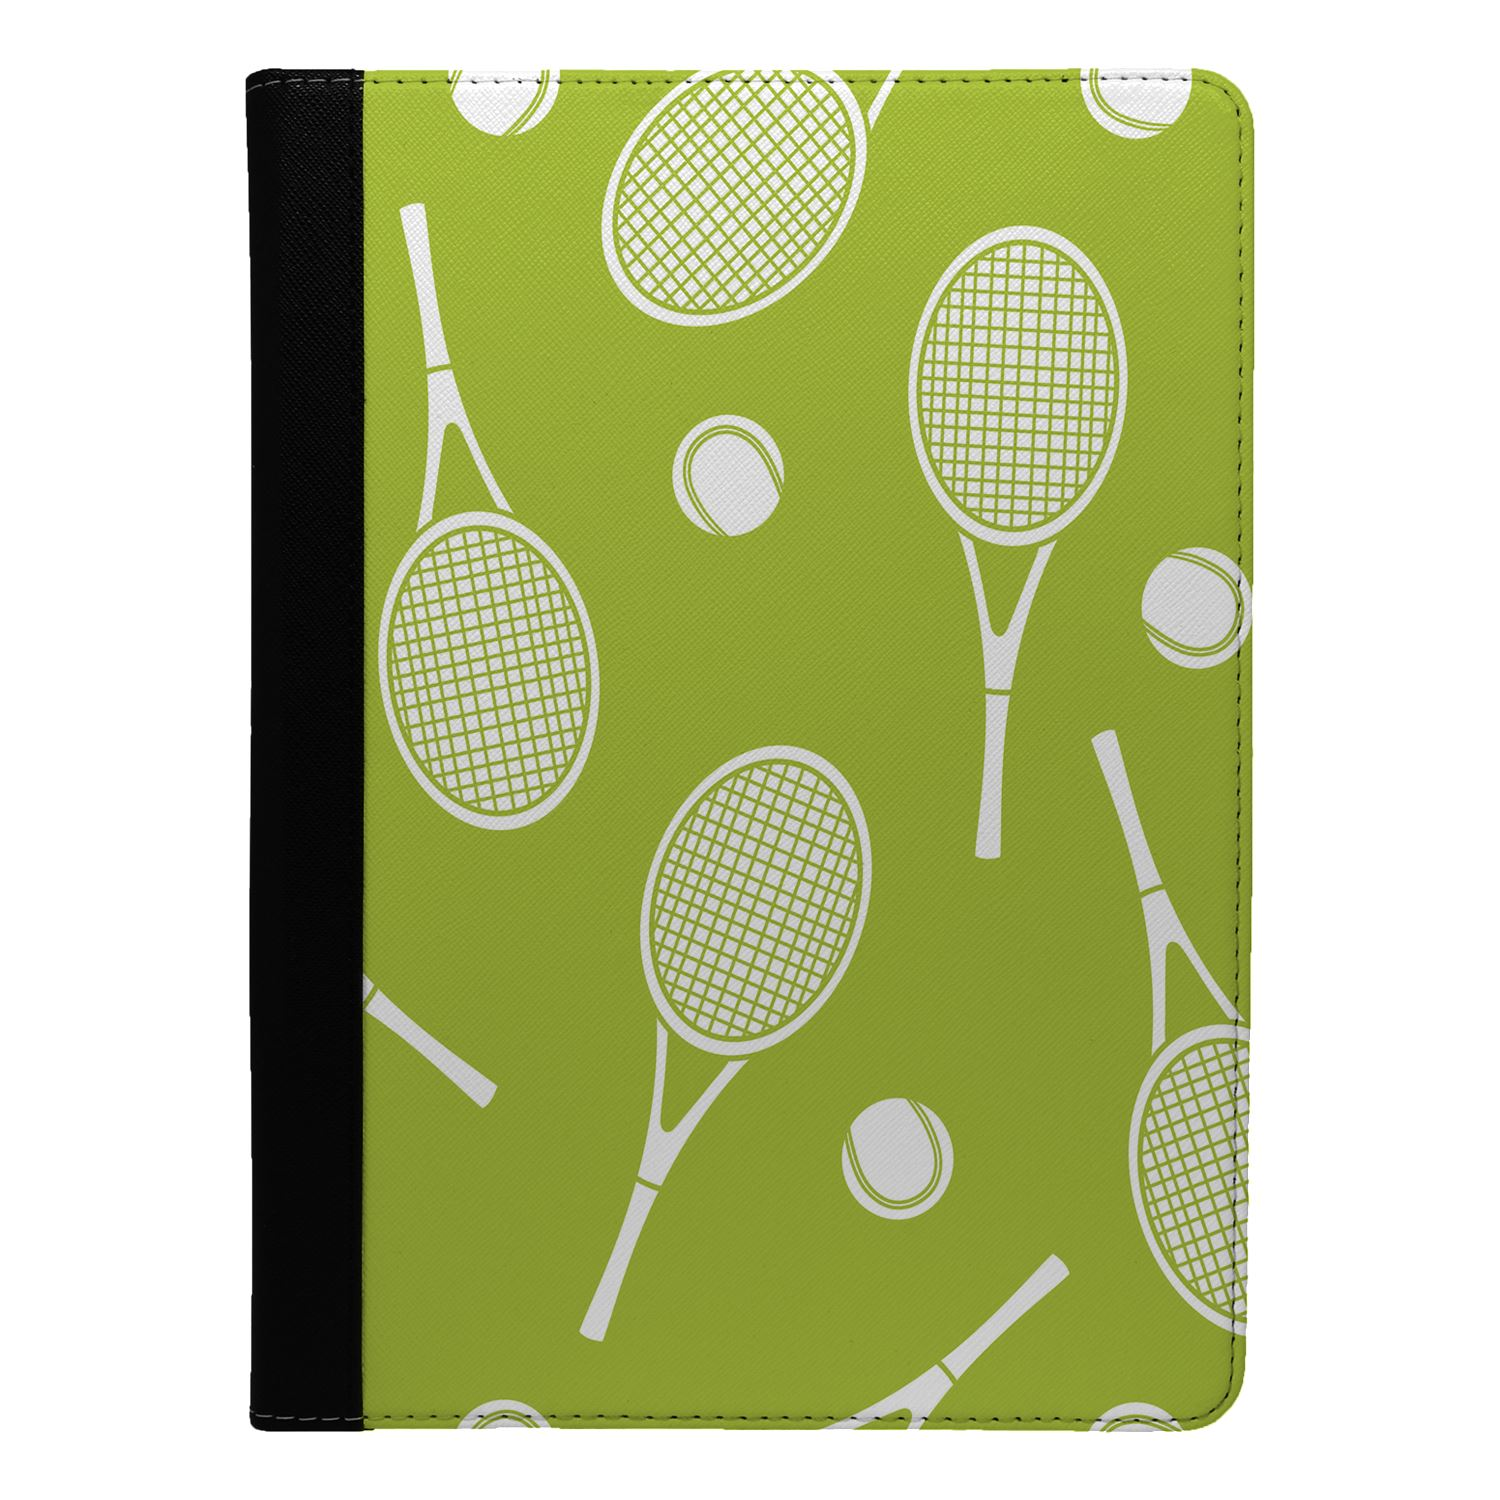 Sport-Tennis-Pattern-Flip-Case-Cover-For-Apple-iPad-S4222